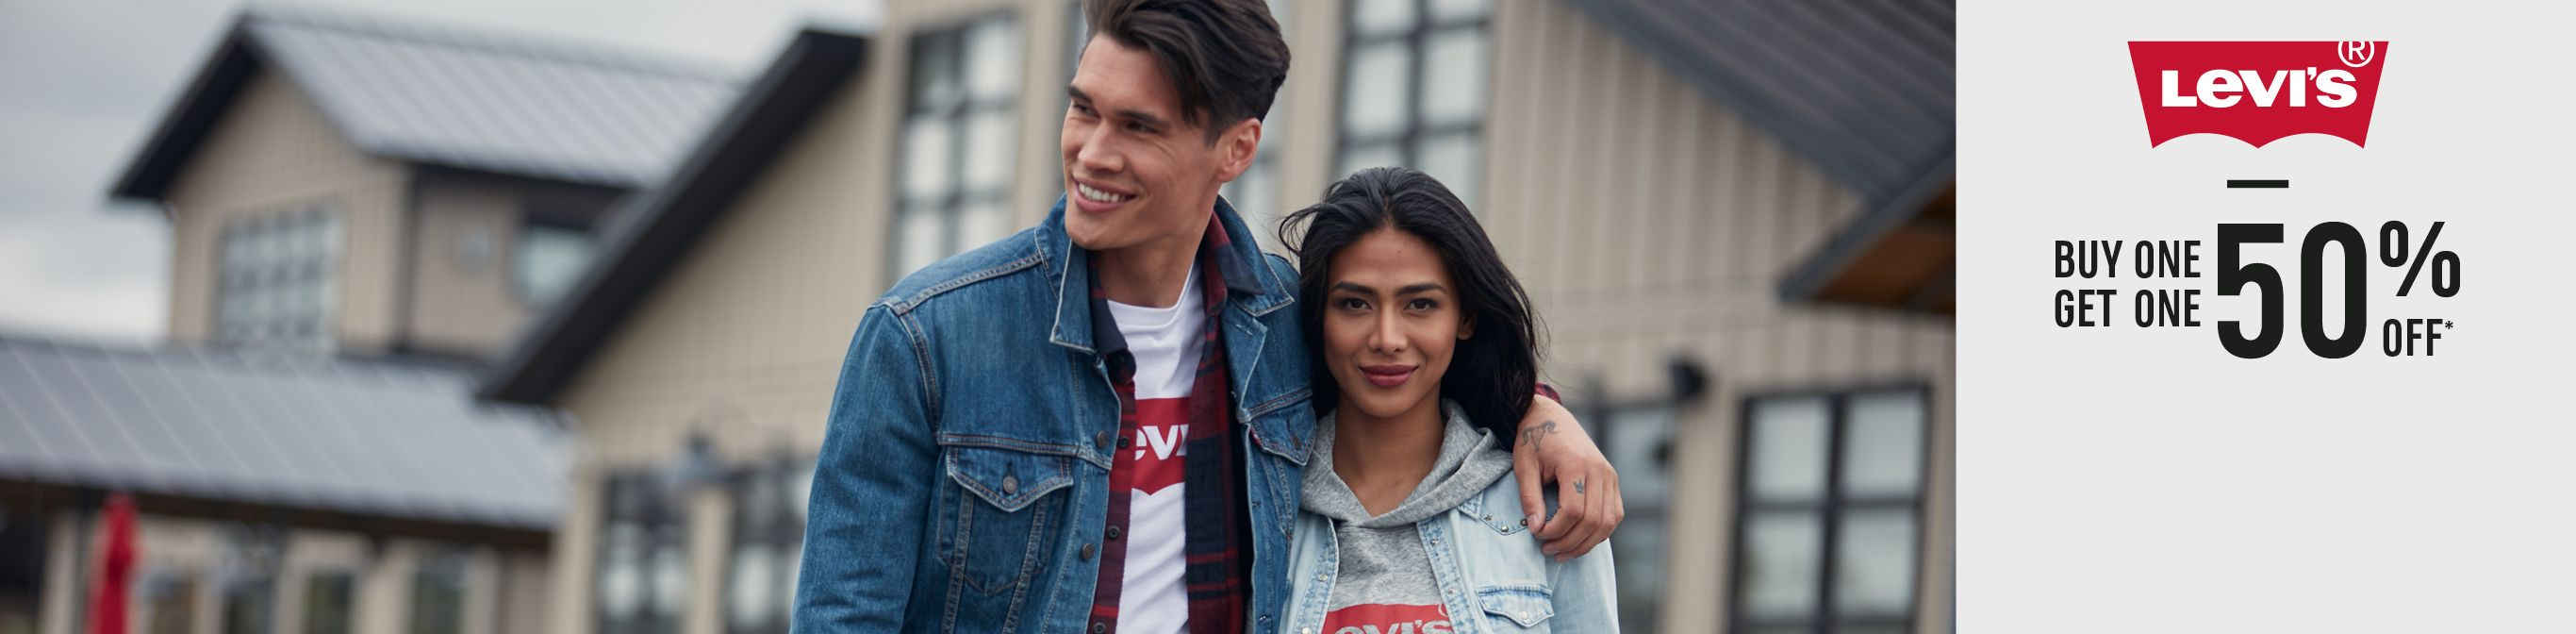 Levi's Buy One Get One 50% Off.